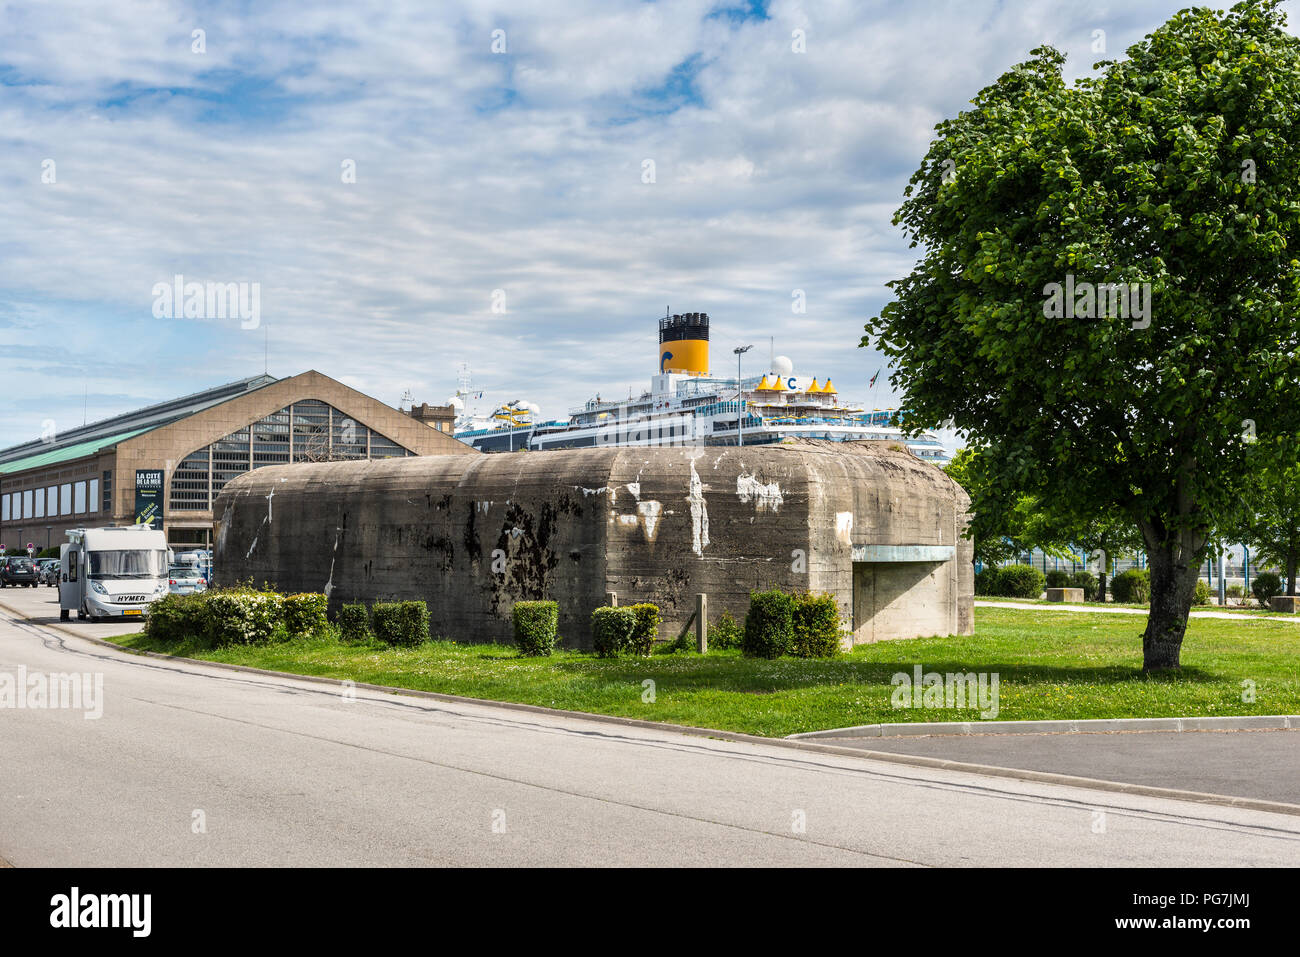 Cherbourg-Octeville, France - May 22, 2017: Historical military defense WW2 (II World War) bunker in the port of Cherbourg-Octeville, Normandy, France - Stock Image